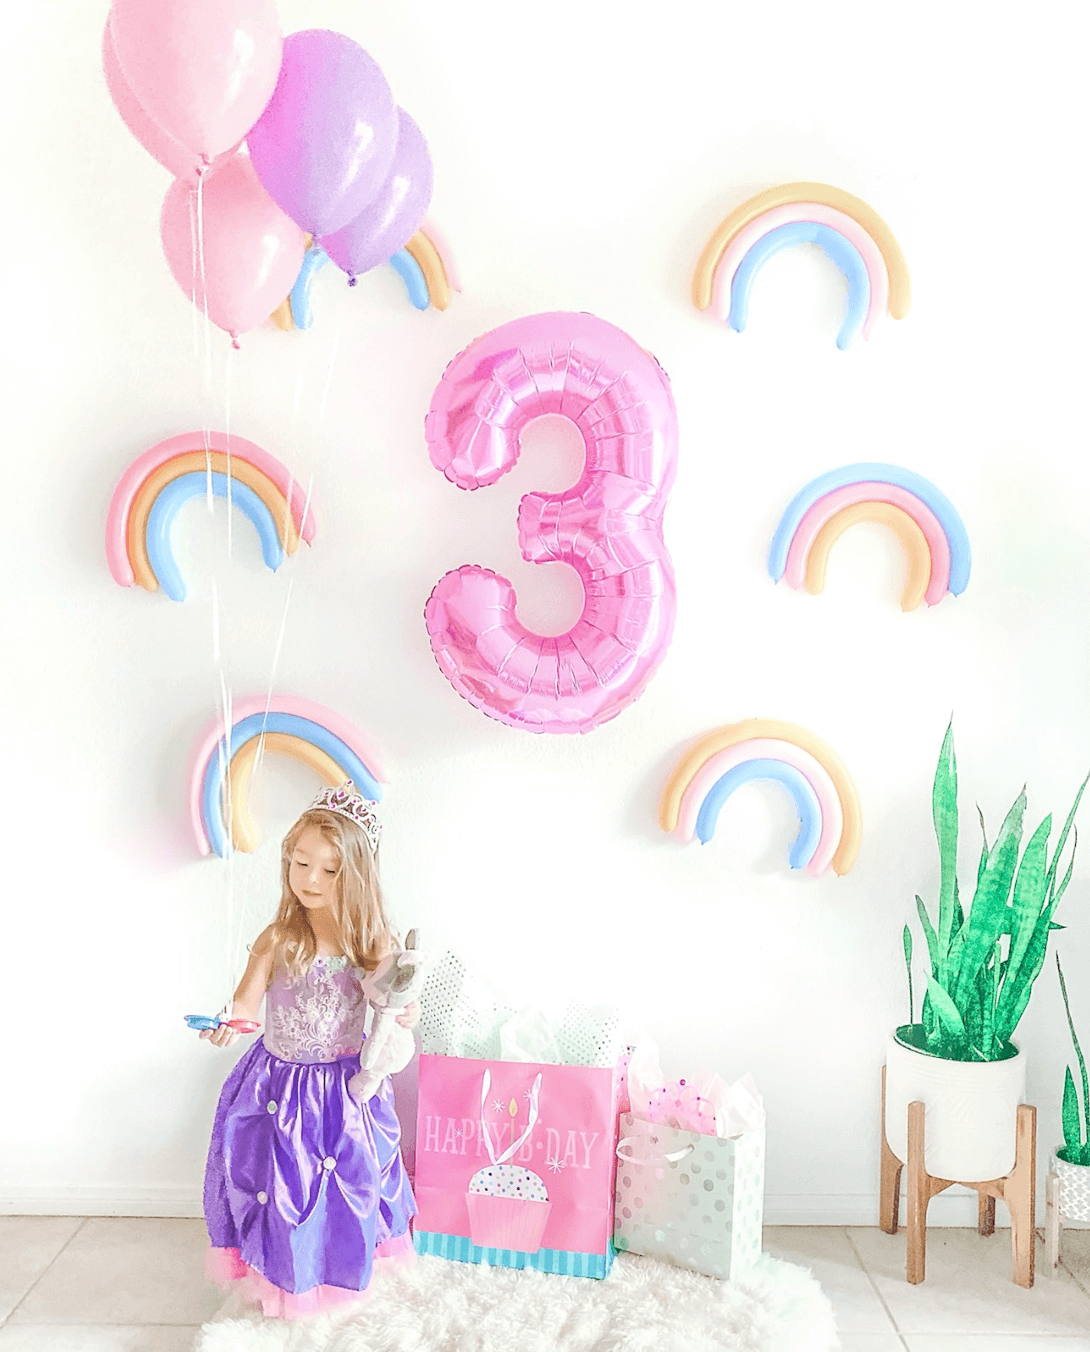 Rainbow Sprinkle Wall - Donut Ice Cream Colorful Unicorn Birthday Party DIY - tiffanieanne.com